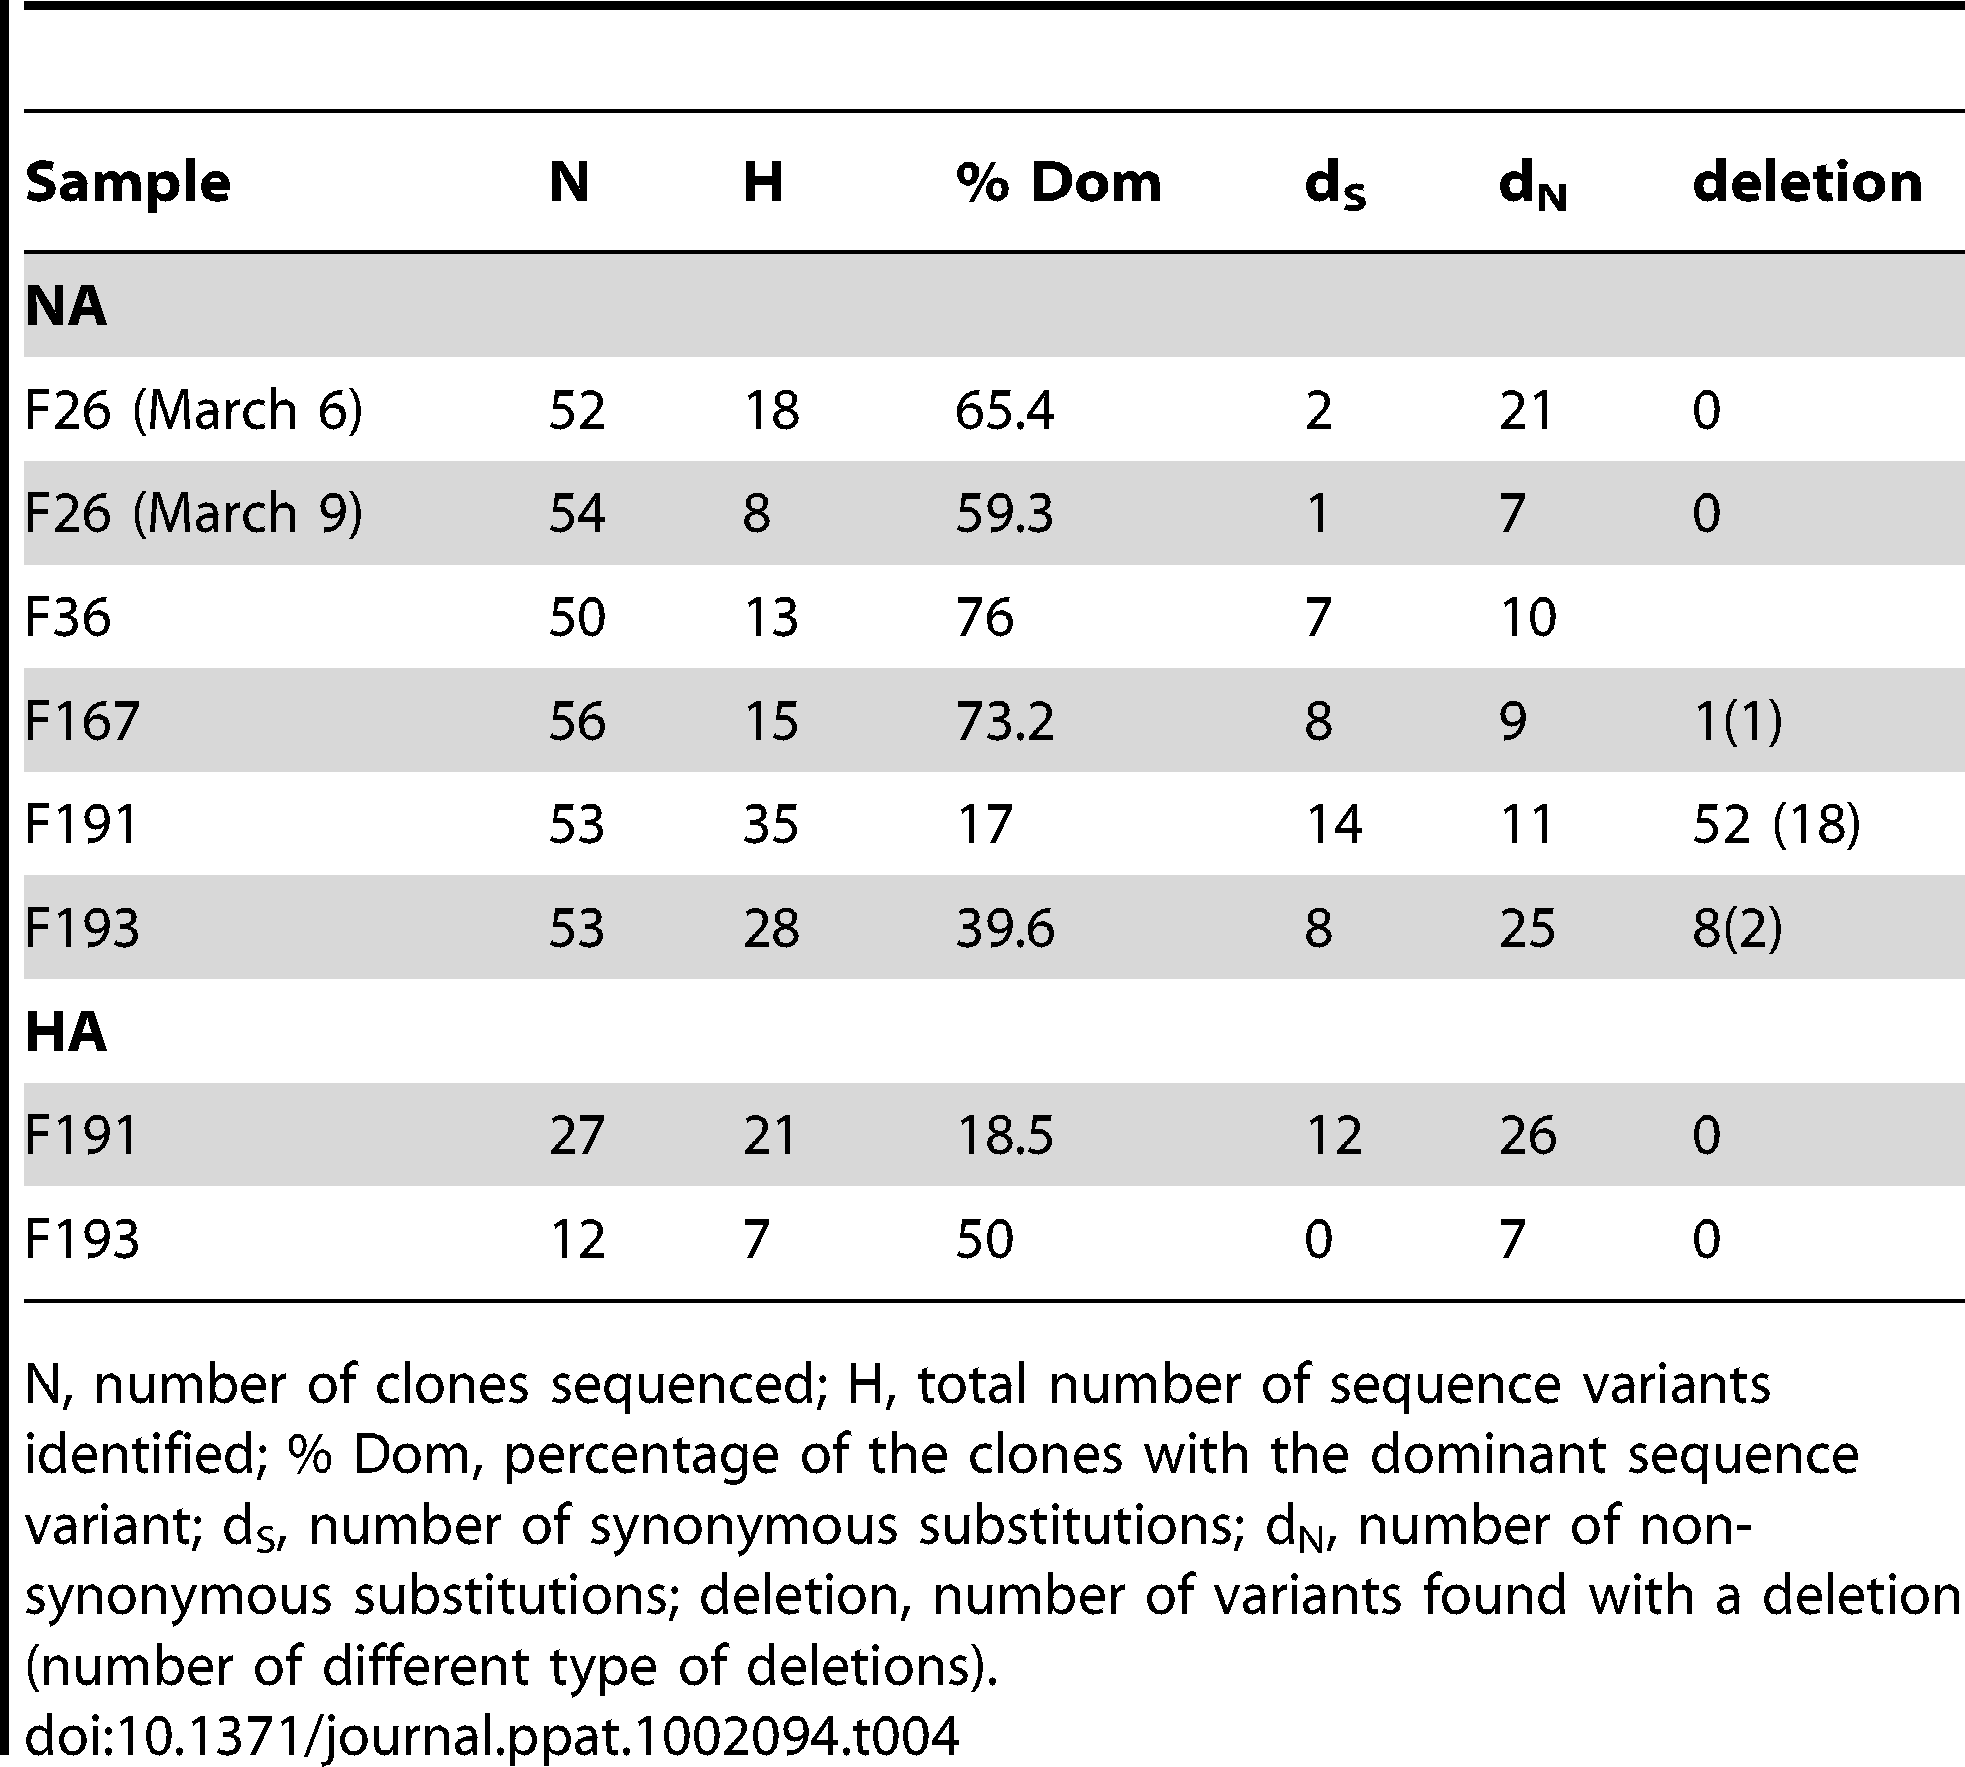 Summary of results obtained from clonal sequencing.